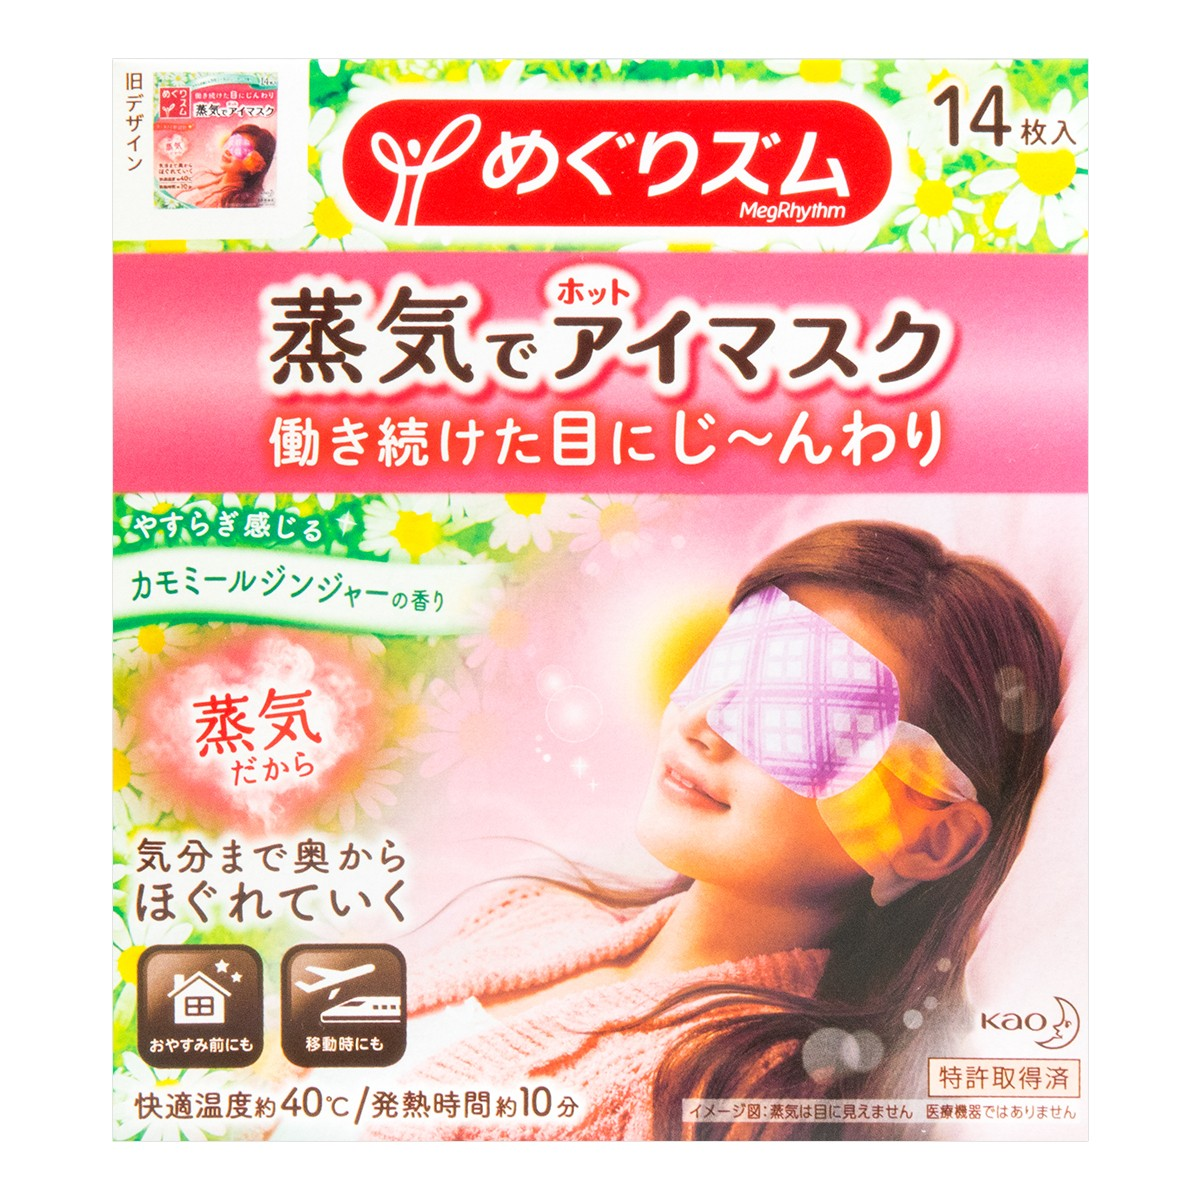 KAO MEGURISM Steam Eye Mask Chamomile 14 Pieces